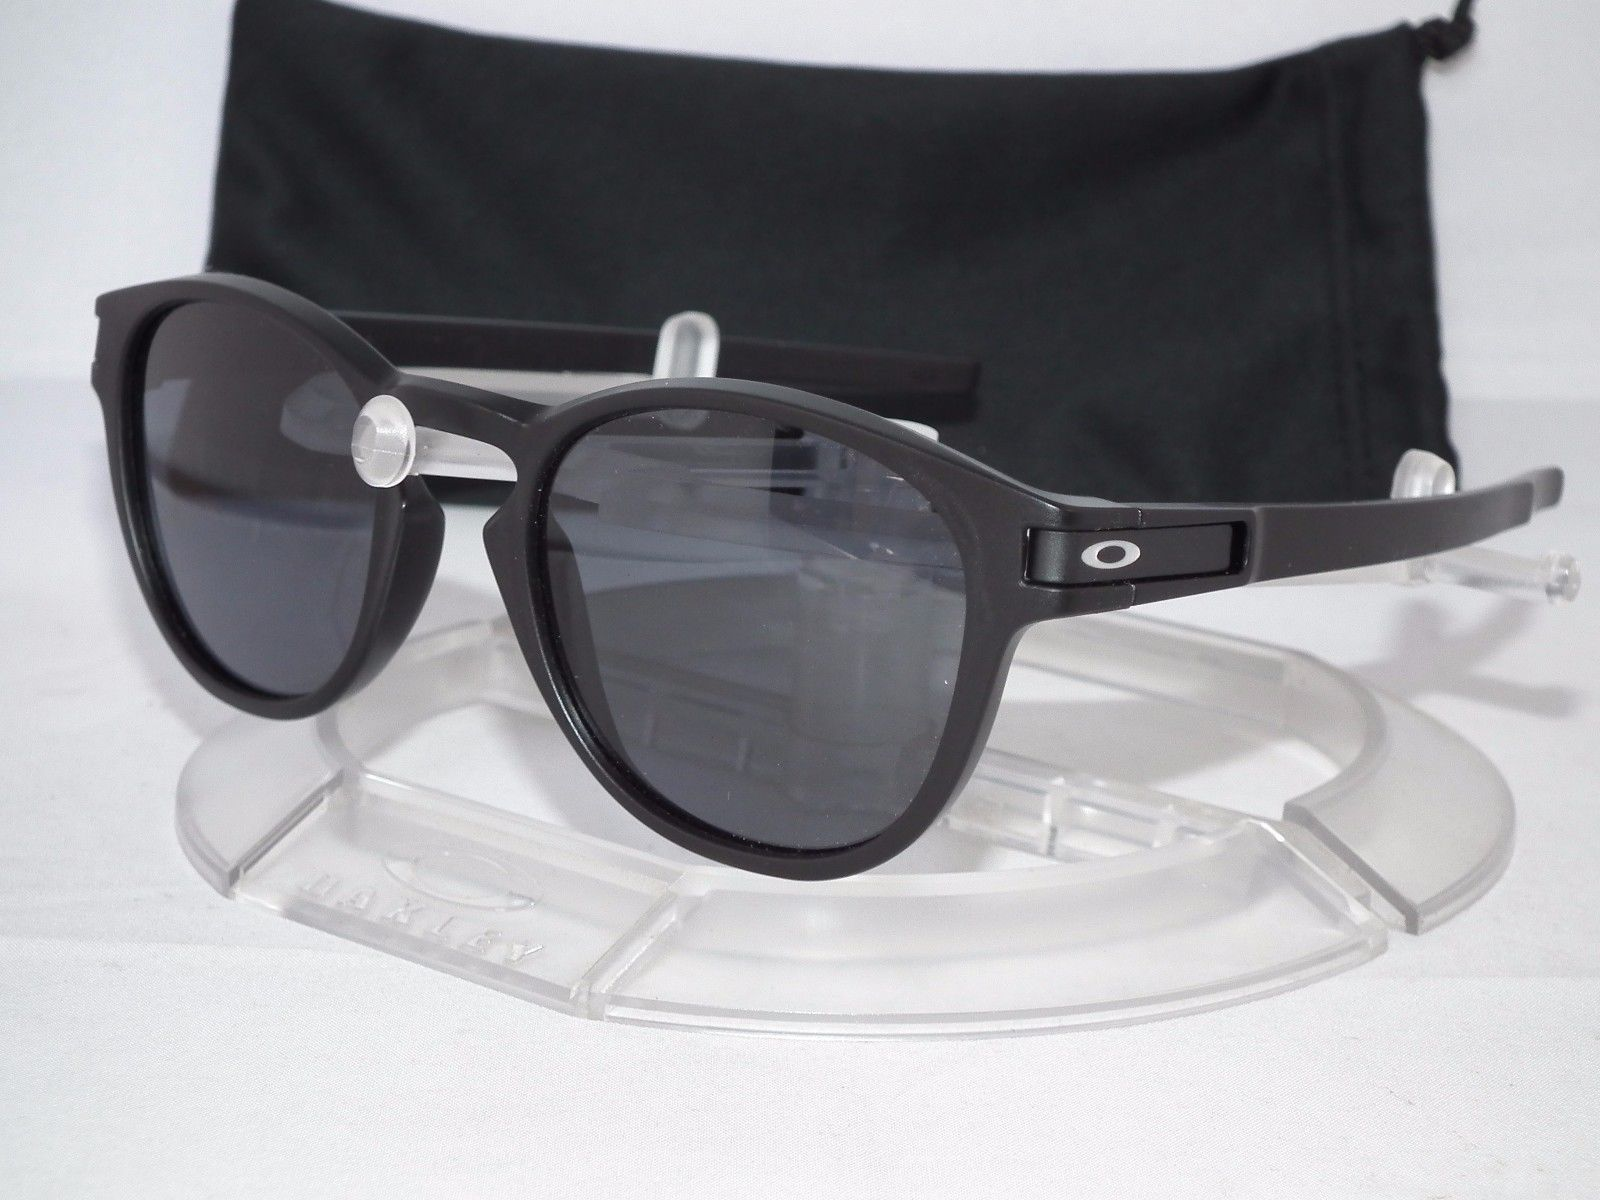 d4842bc1dc7 NEW OAKLEY LATCH SUNGLASSES OO9265-01 Matte Black   Grey